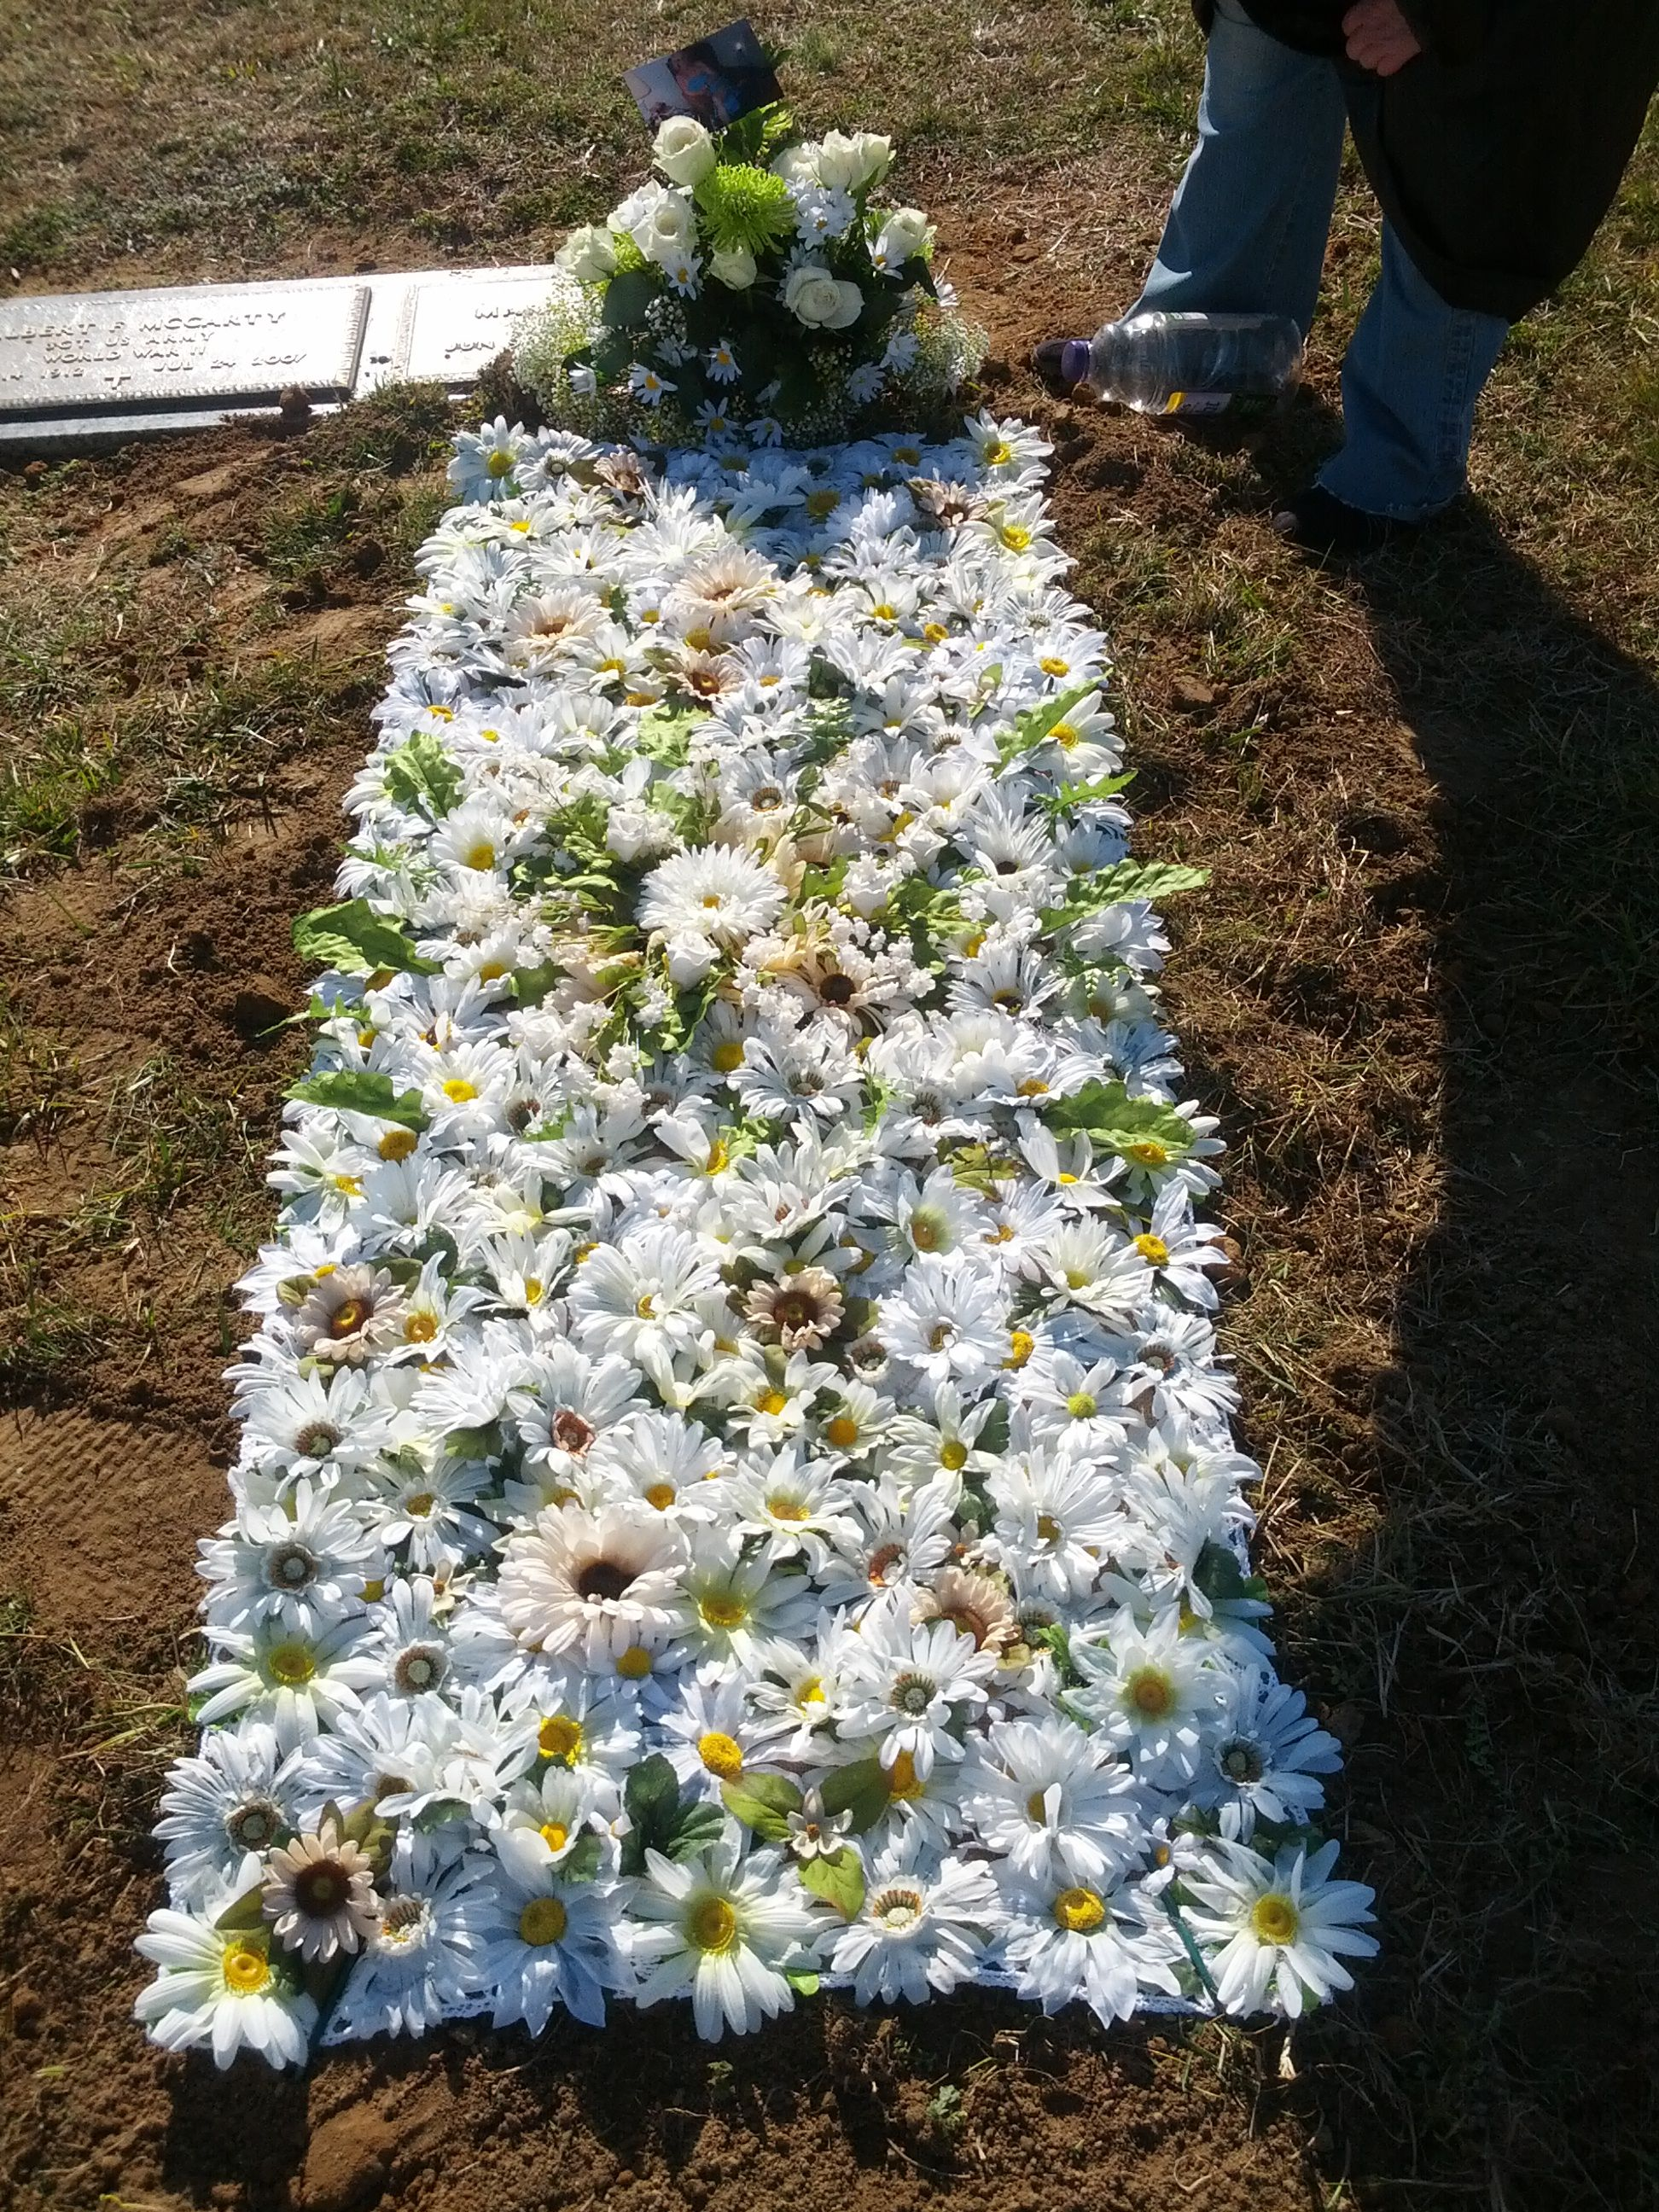 Pin By Debra Gallahan On Floral Blanket Grave Flowers Gravesite Decorations Cemetery Decorations